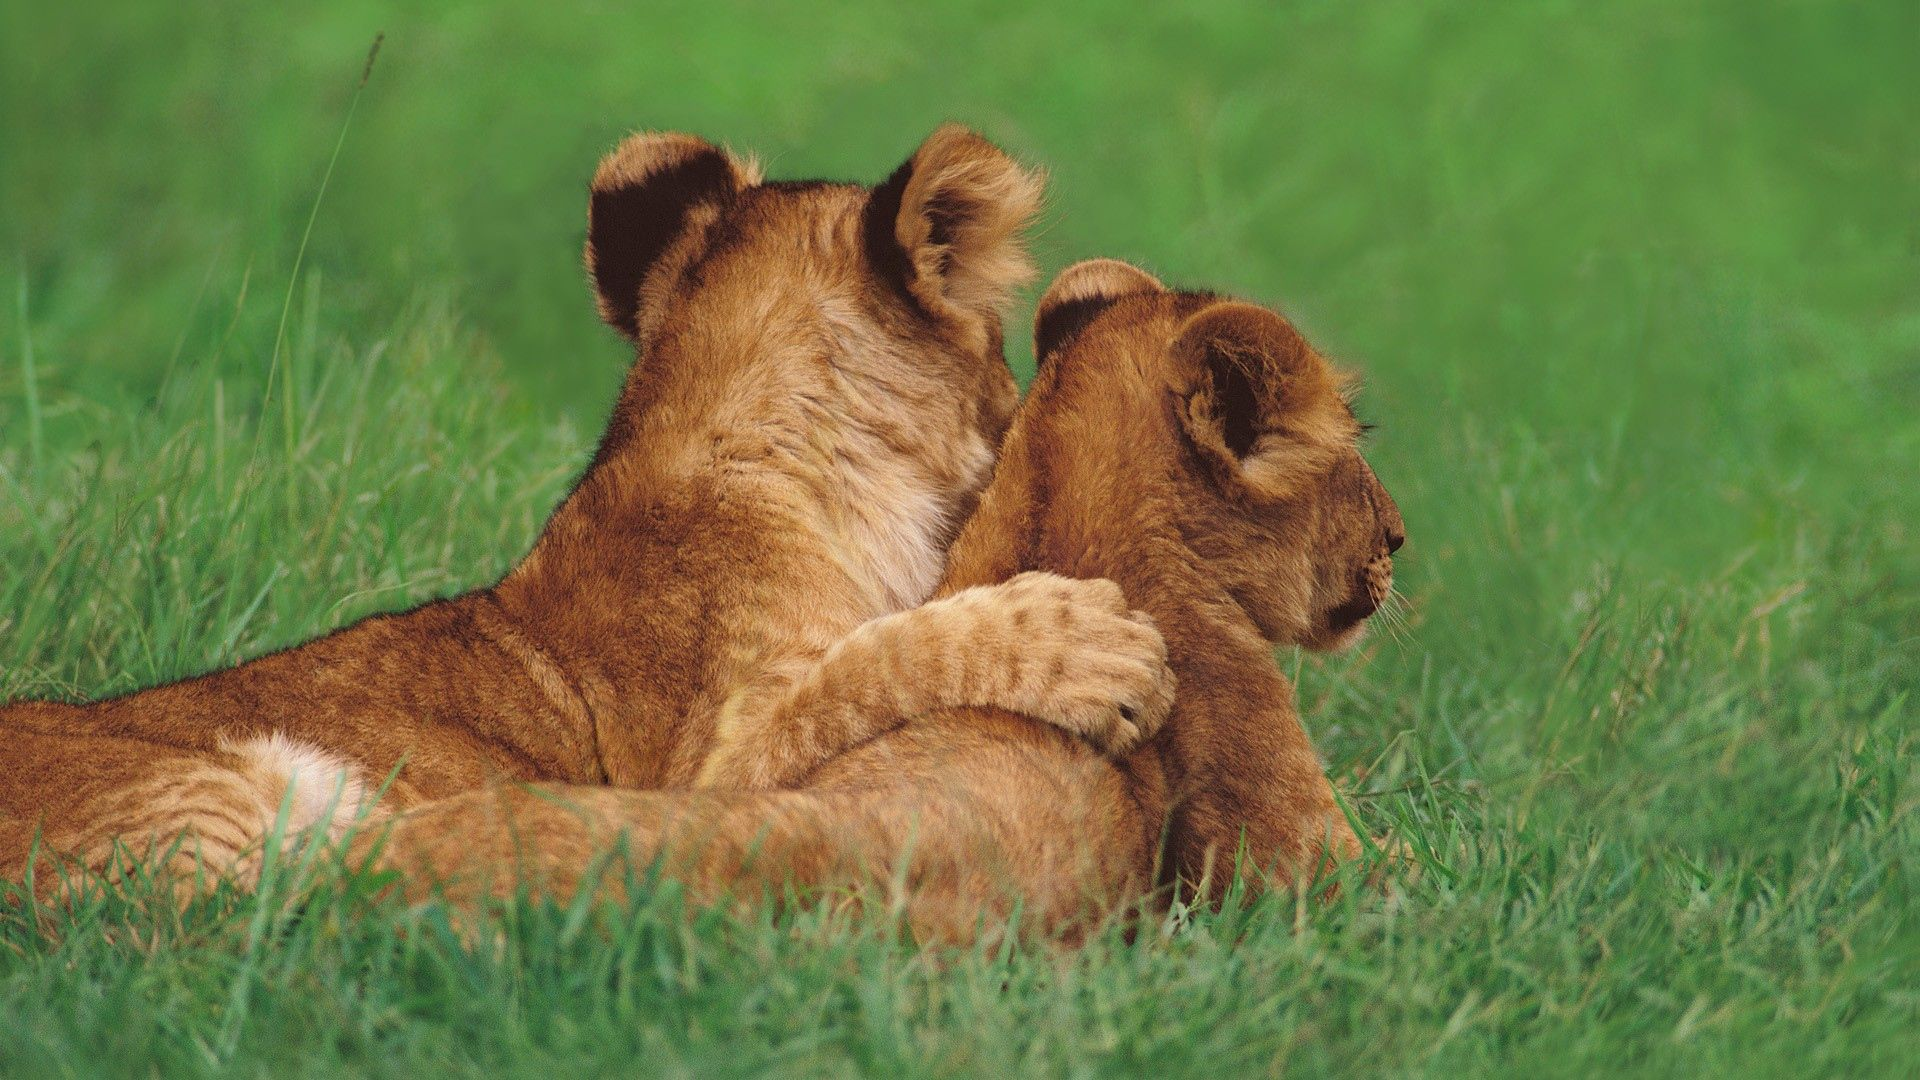 119832 download wallpaper Animals, Couple, Pair, Young, Grass, To Lie Down, Lie, Lions screensavers and pictures for free